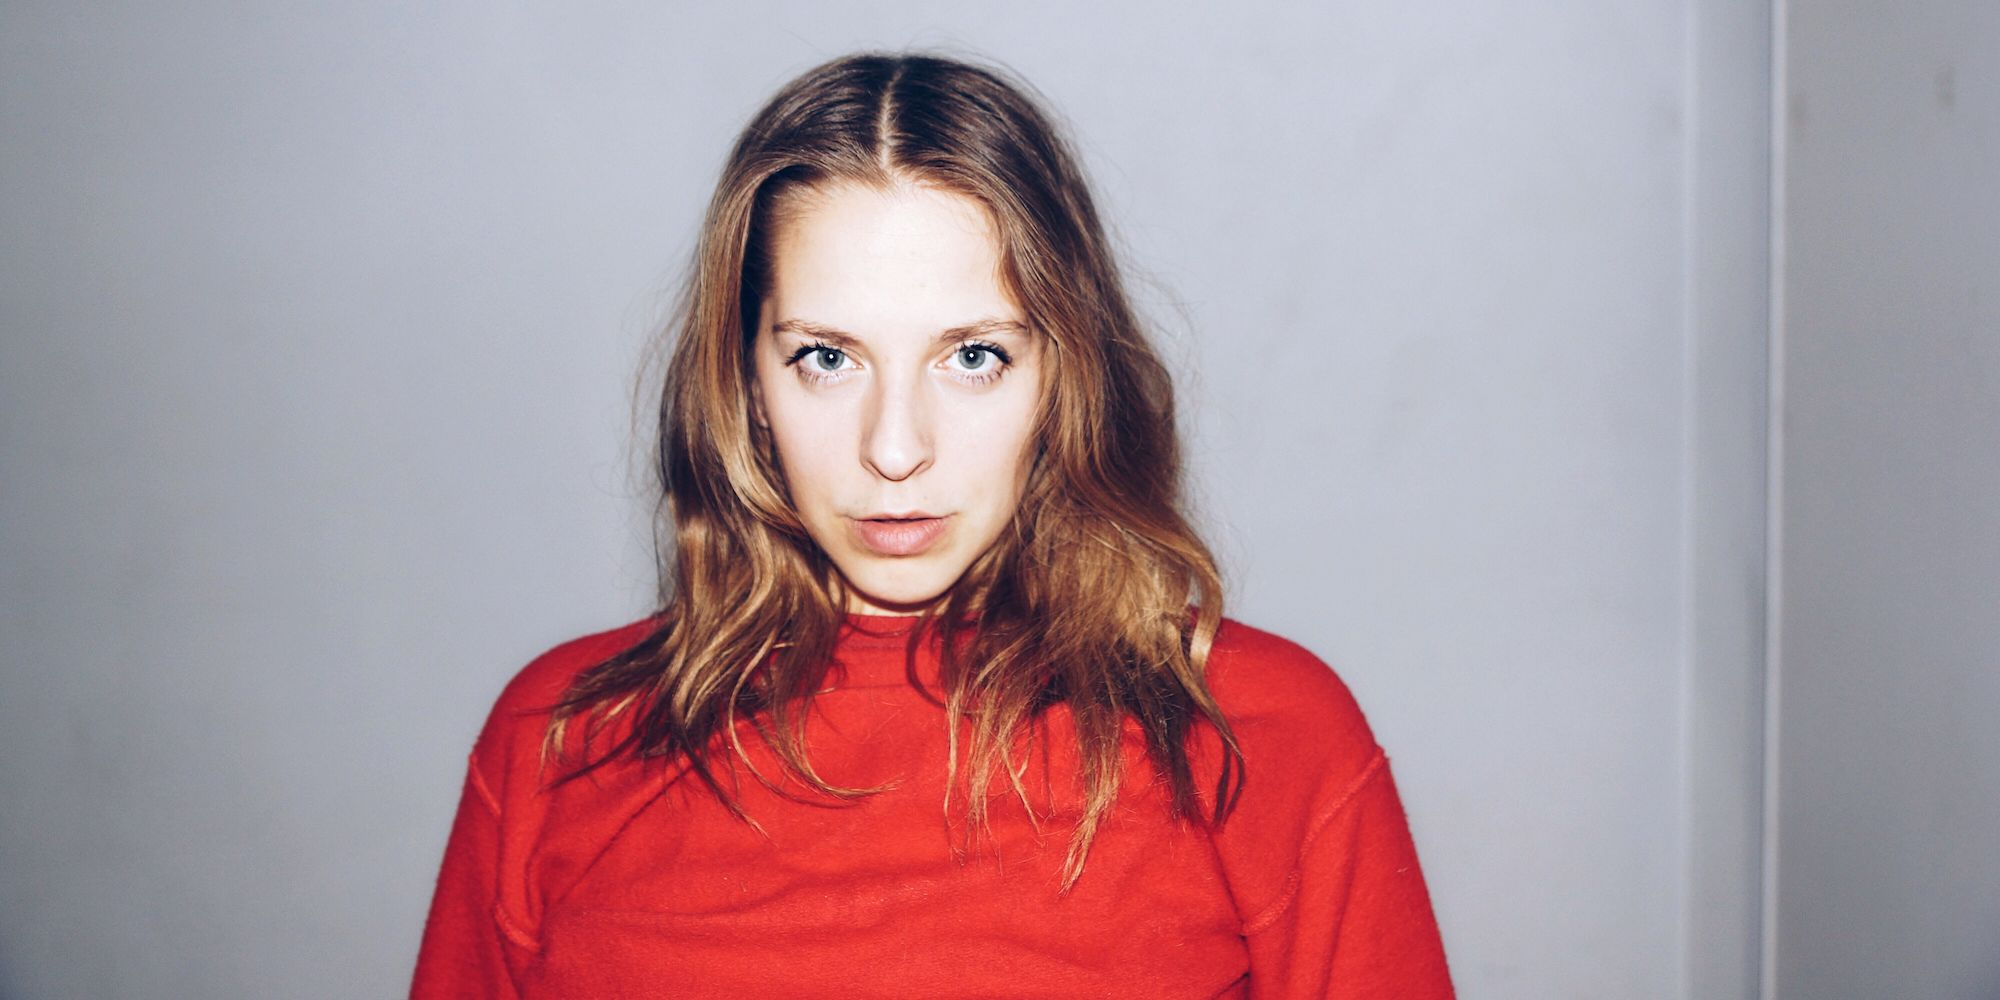 Julia Nunes Is Relentlessly Personal: On New Music, Big Changes, and Community Being Crucial